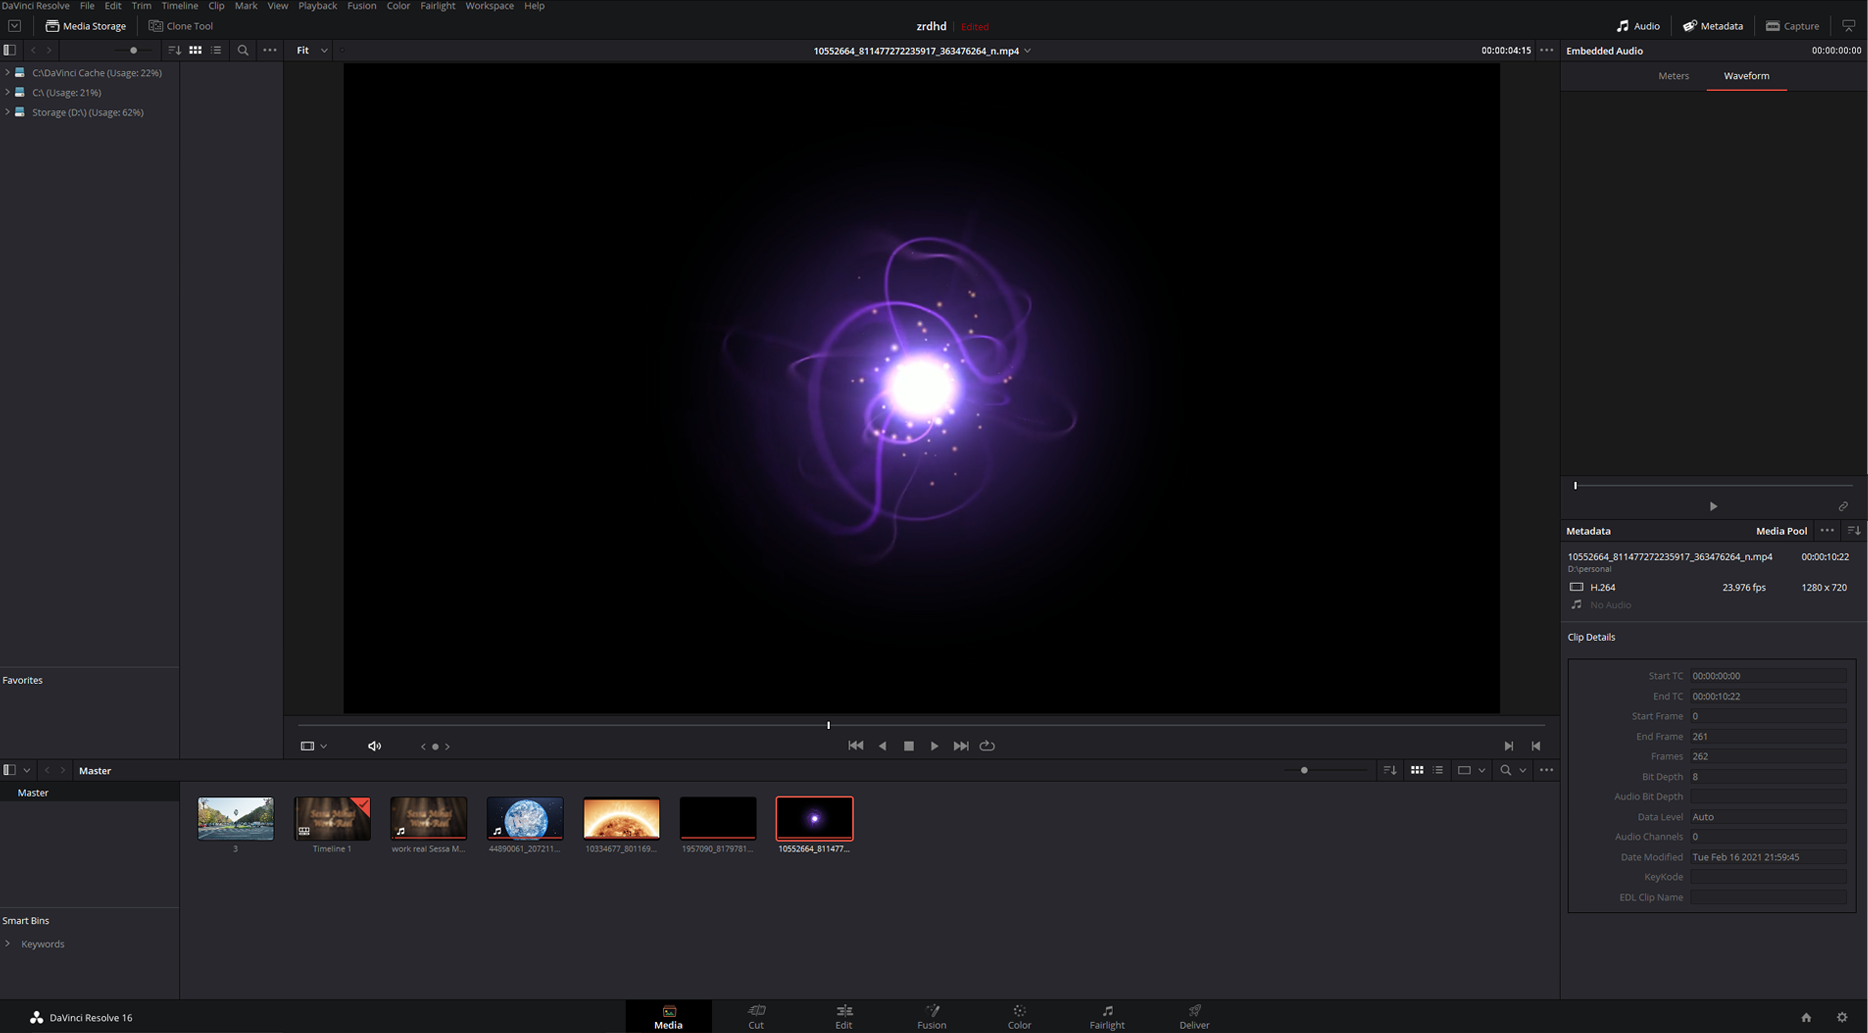 render DaVinci Resolve projects as mp4